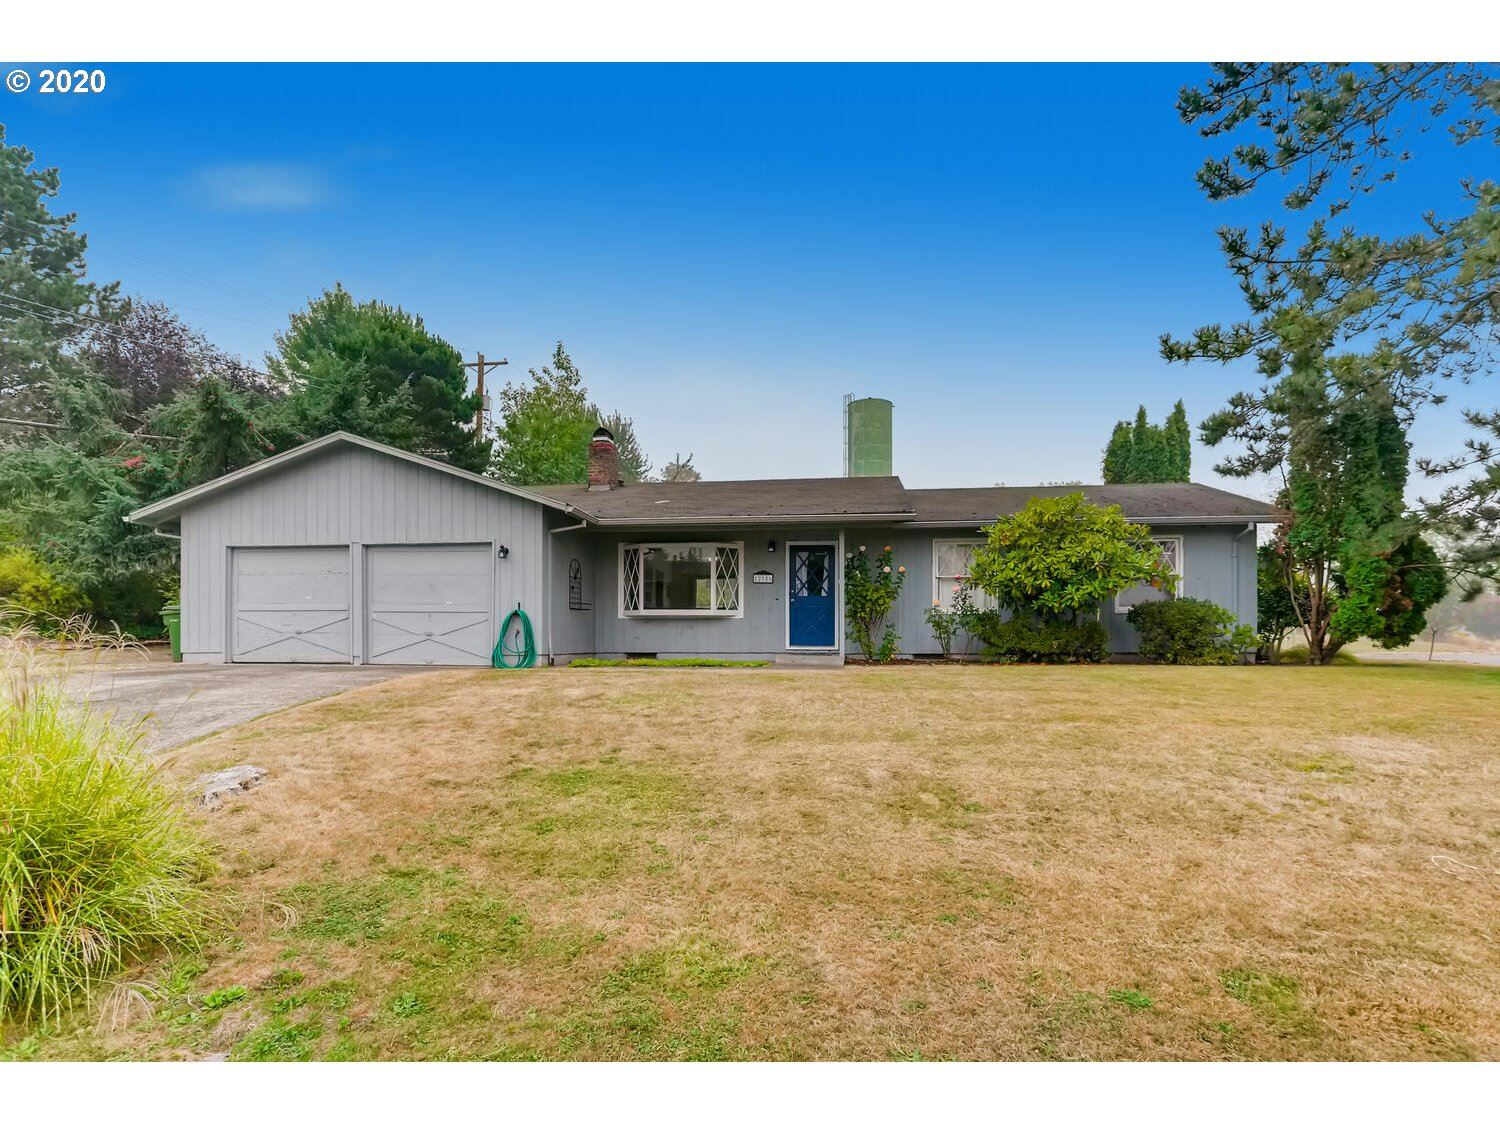 12816 SW 61ST AVE, Portland, OR 97219 - MLS#: 20674244